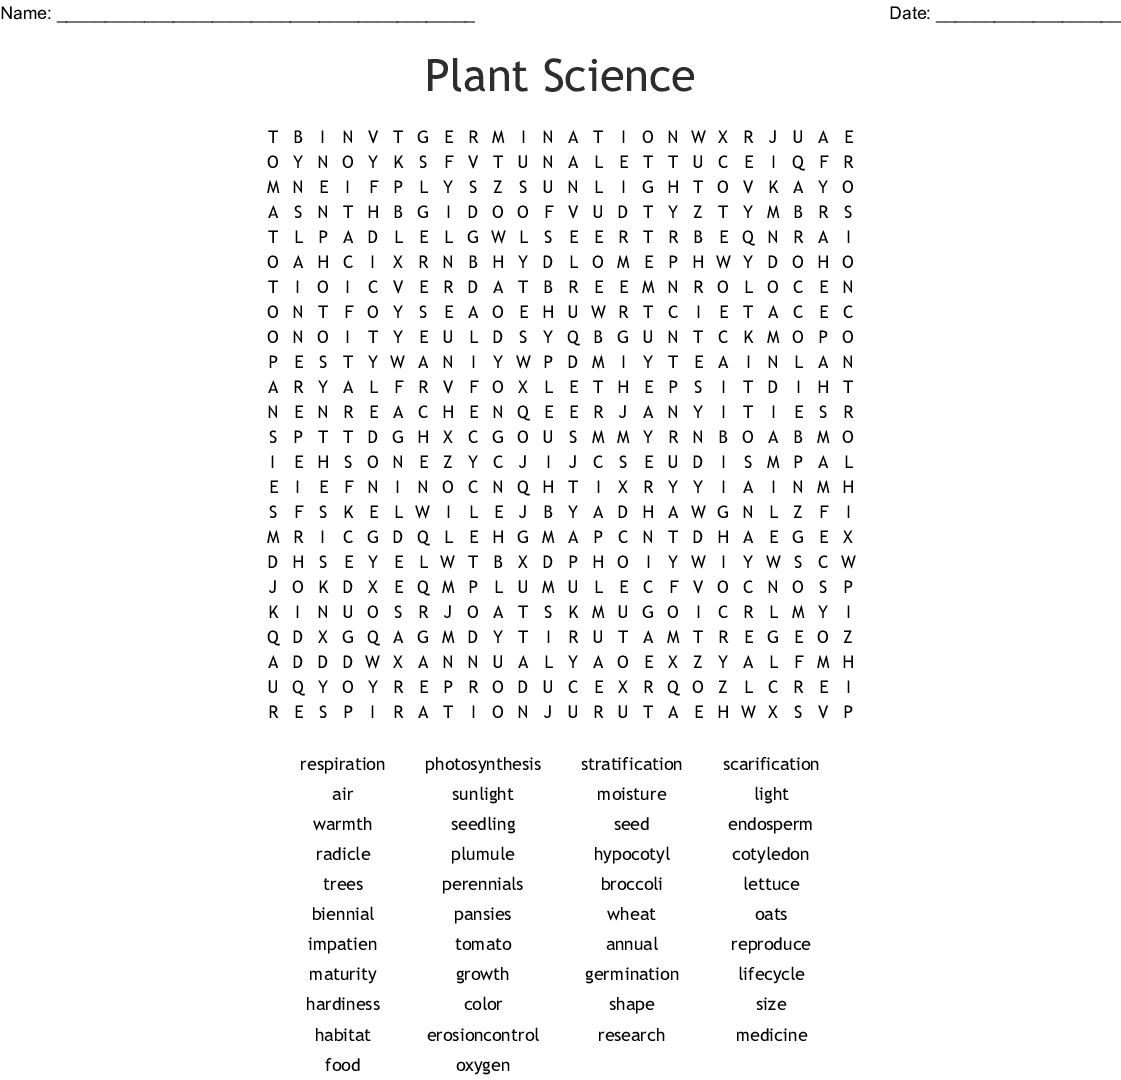 Plant Science Word Search